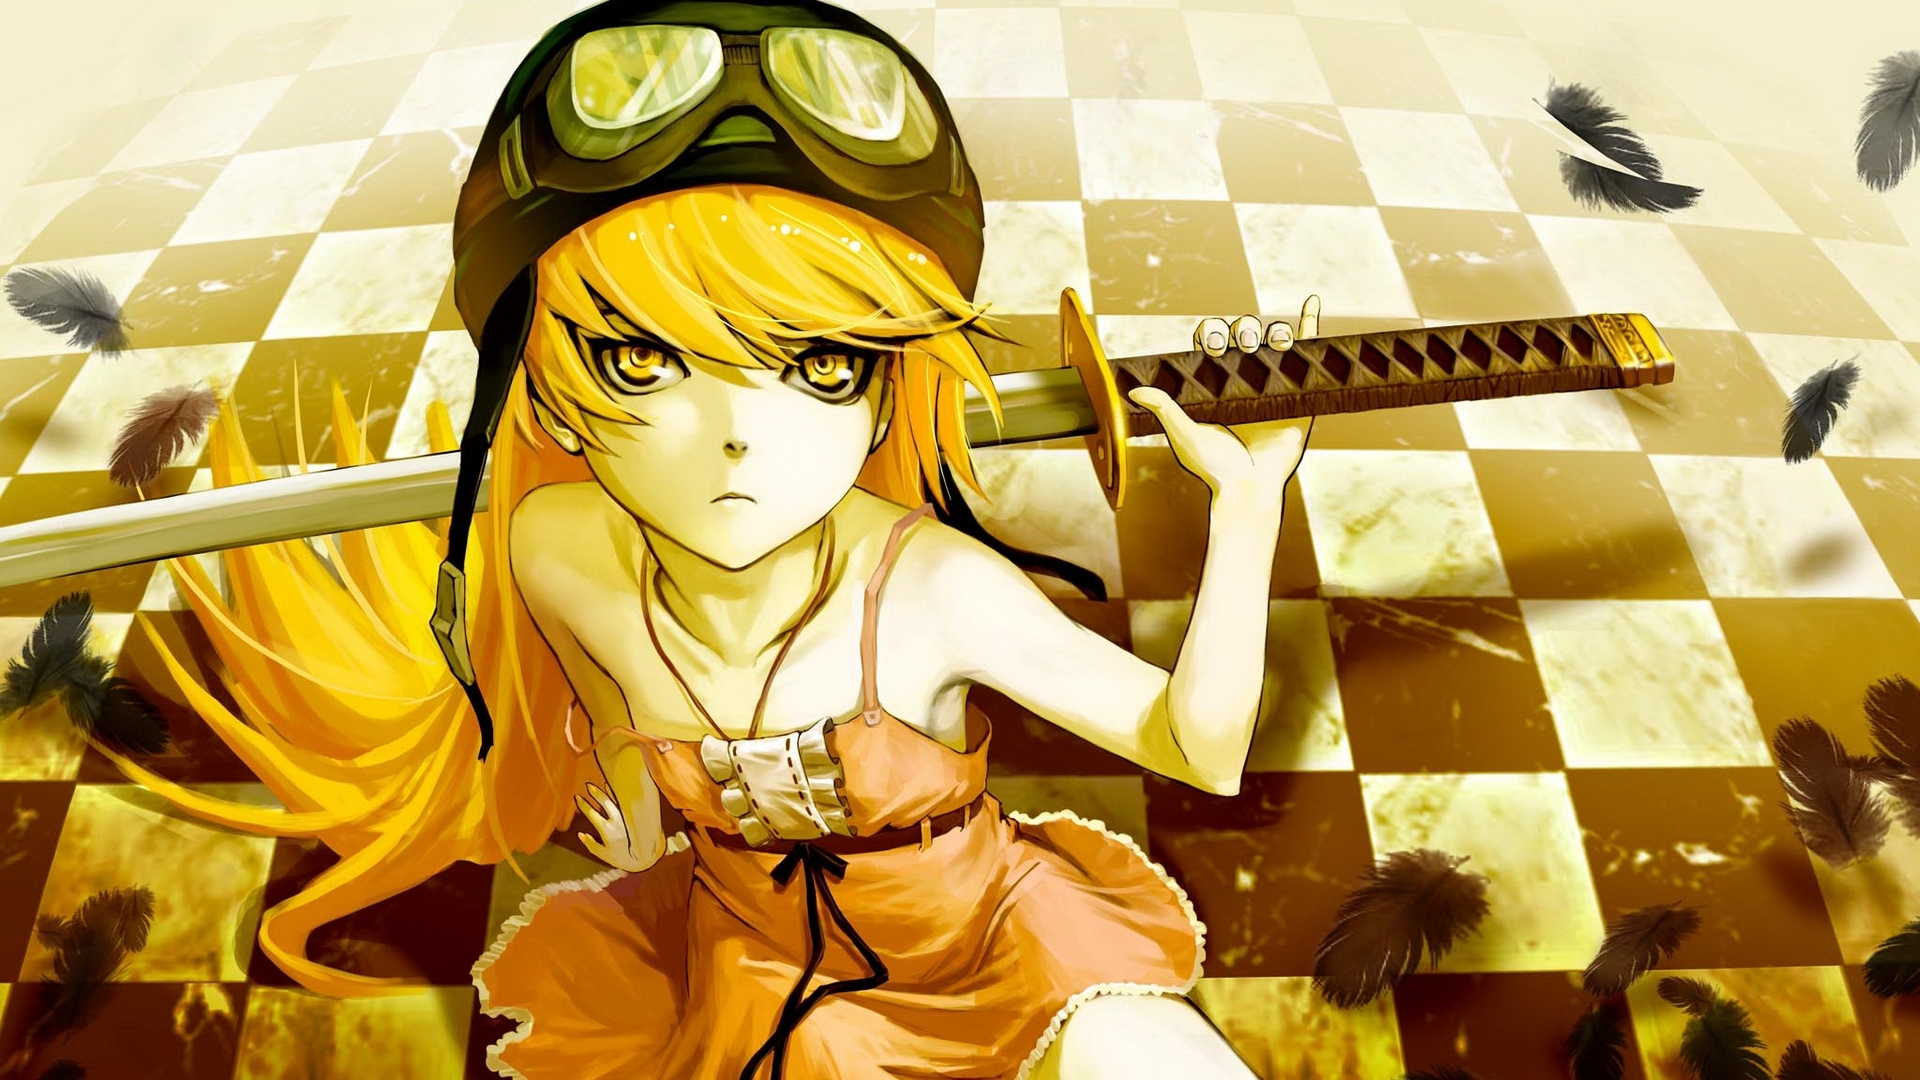 32250 download wallpaper Anime, Girls screensavers and pictures for free